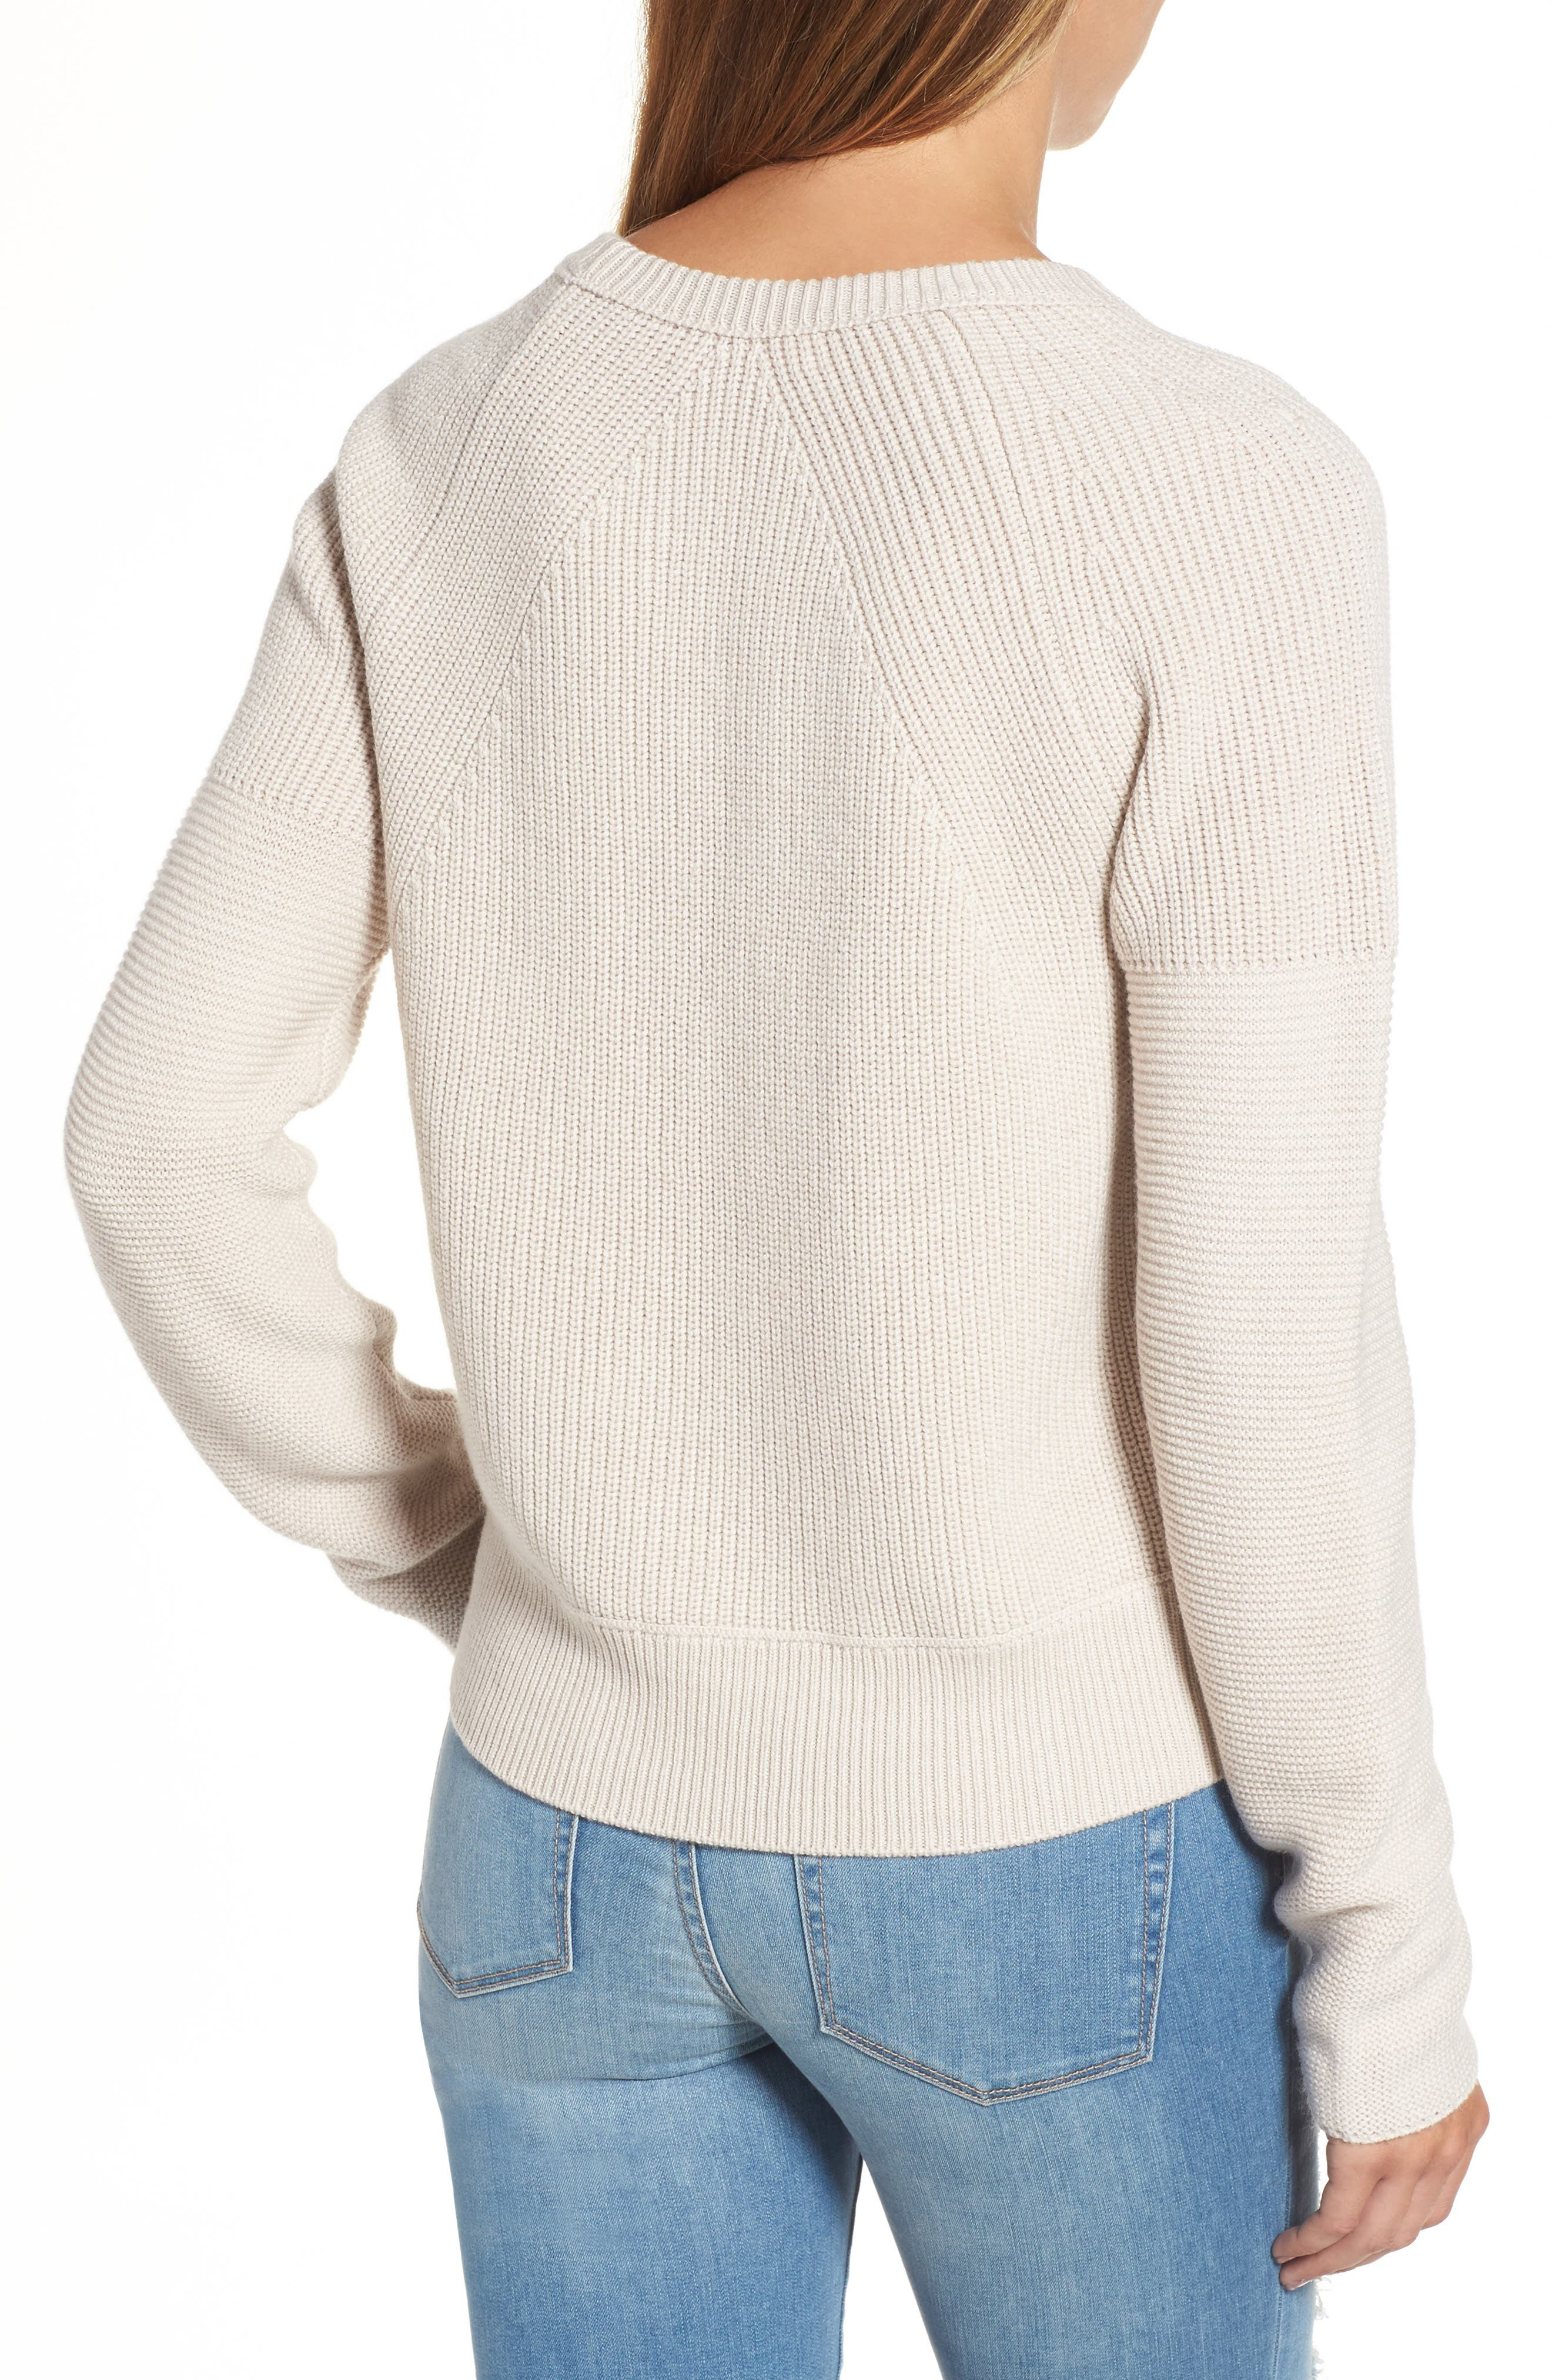 Engineered Stitch Sweater,                             Alternate thumbnail 2, color,                             251